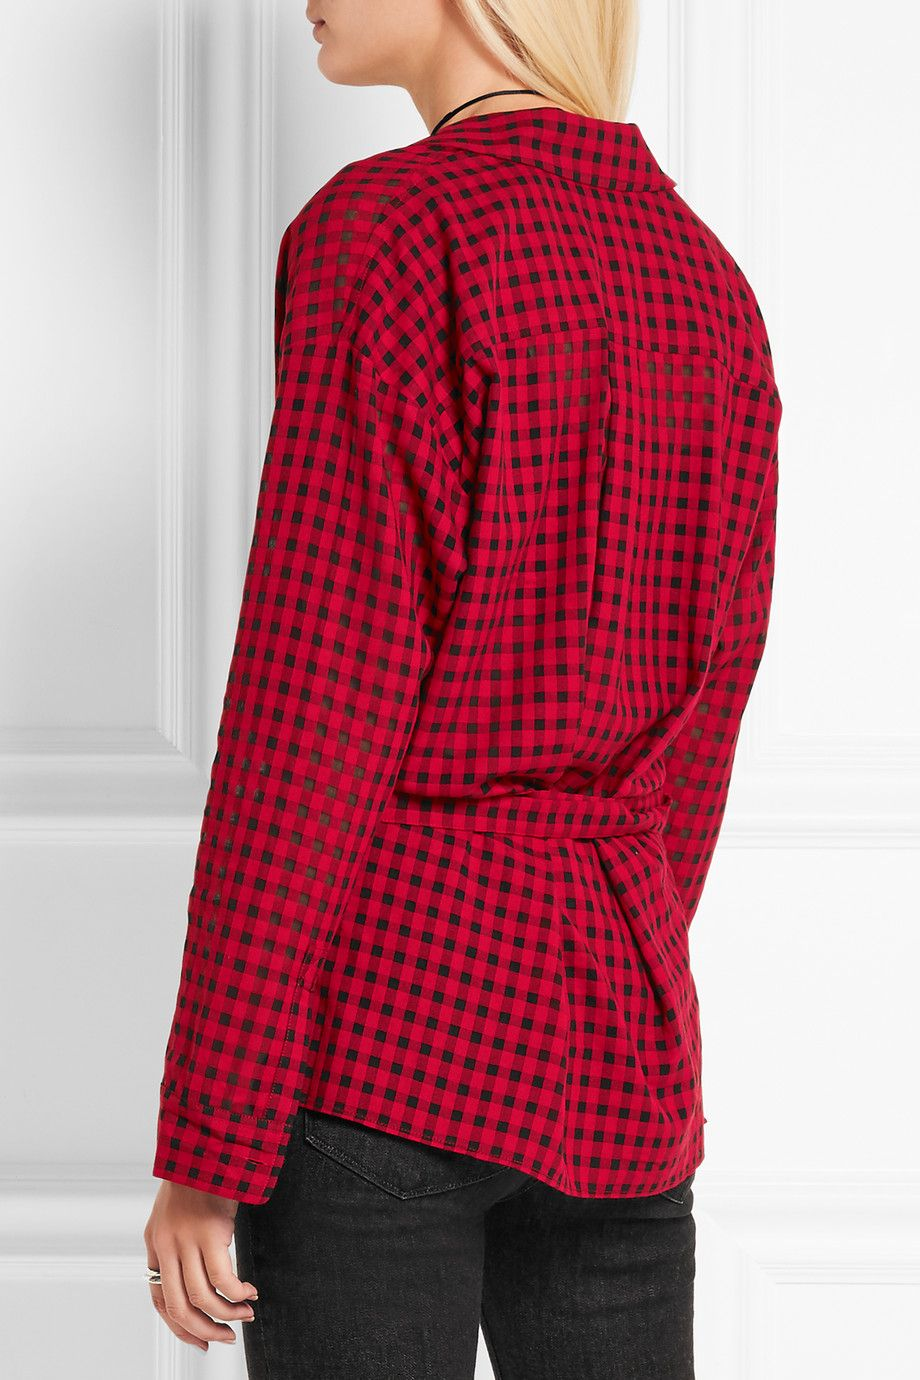 T by Alexander Wang | Plaid gauze wrap shirt | NET-A-PORTER.COM